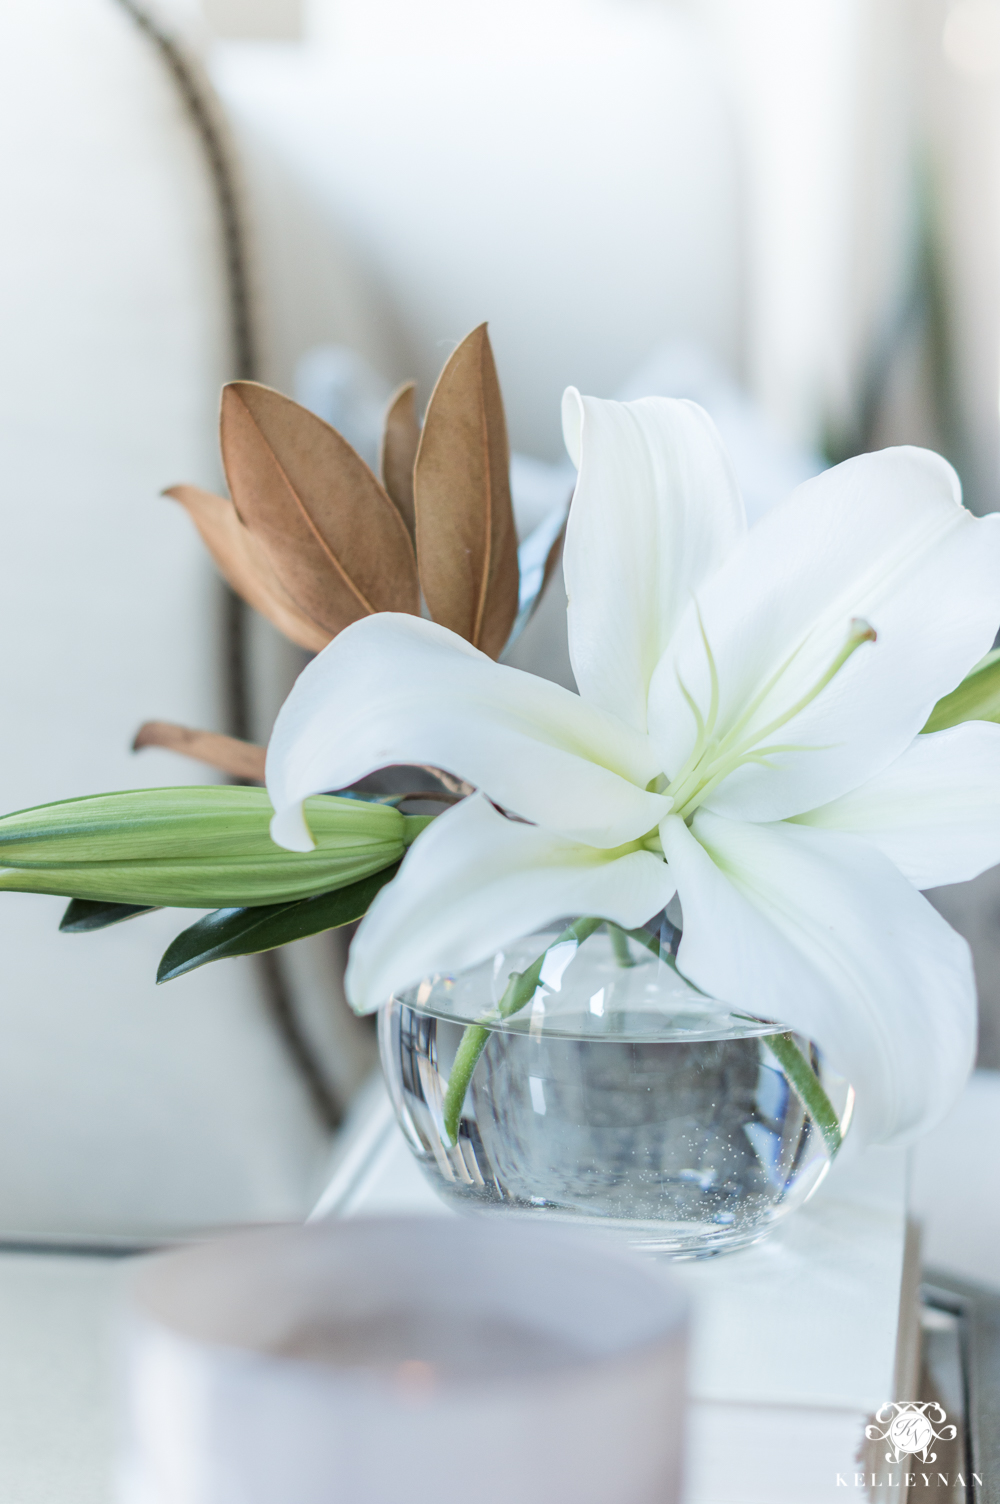 Lily bloom with green magnolia leaves mixed in